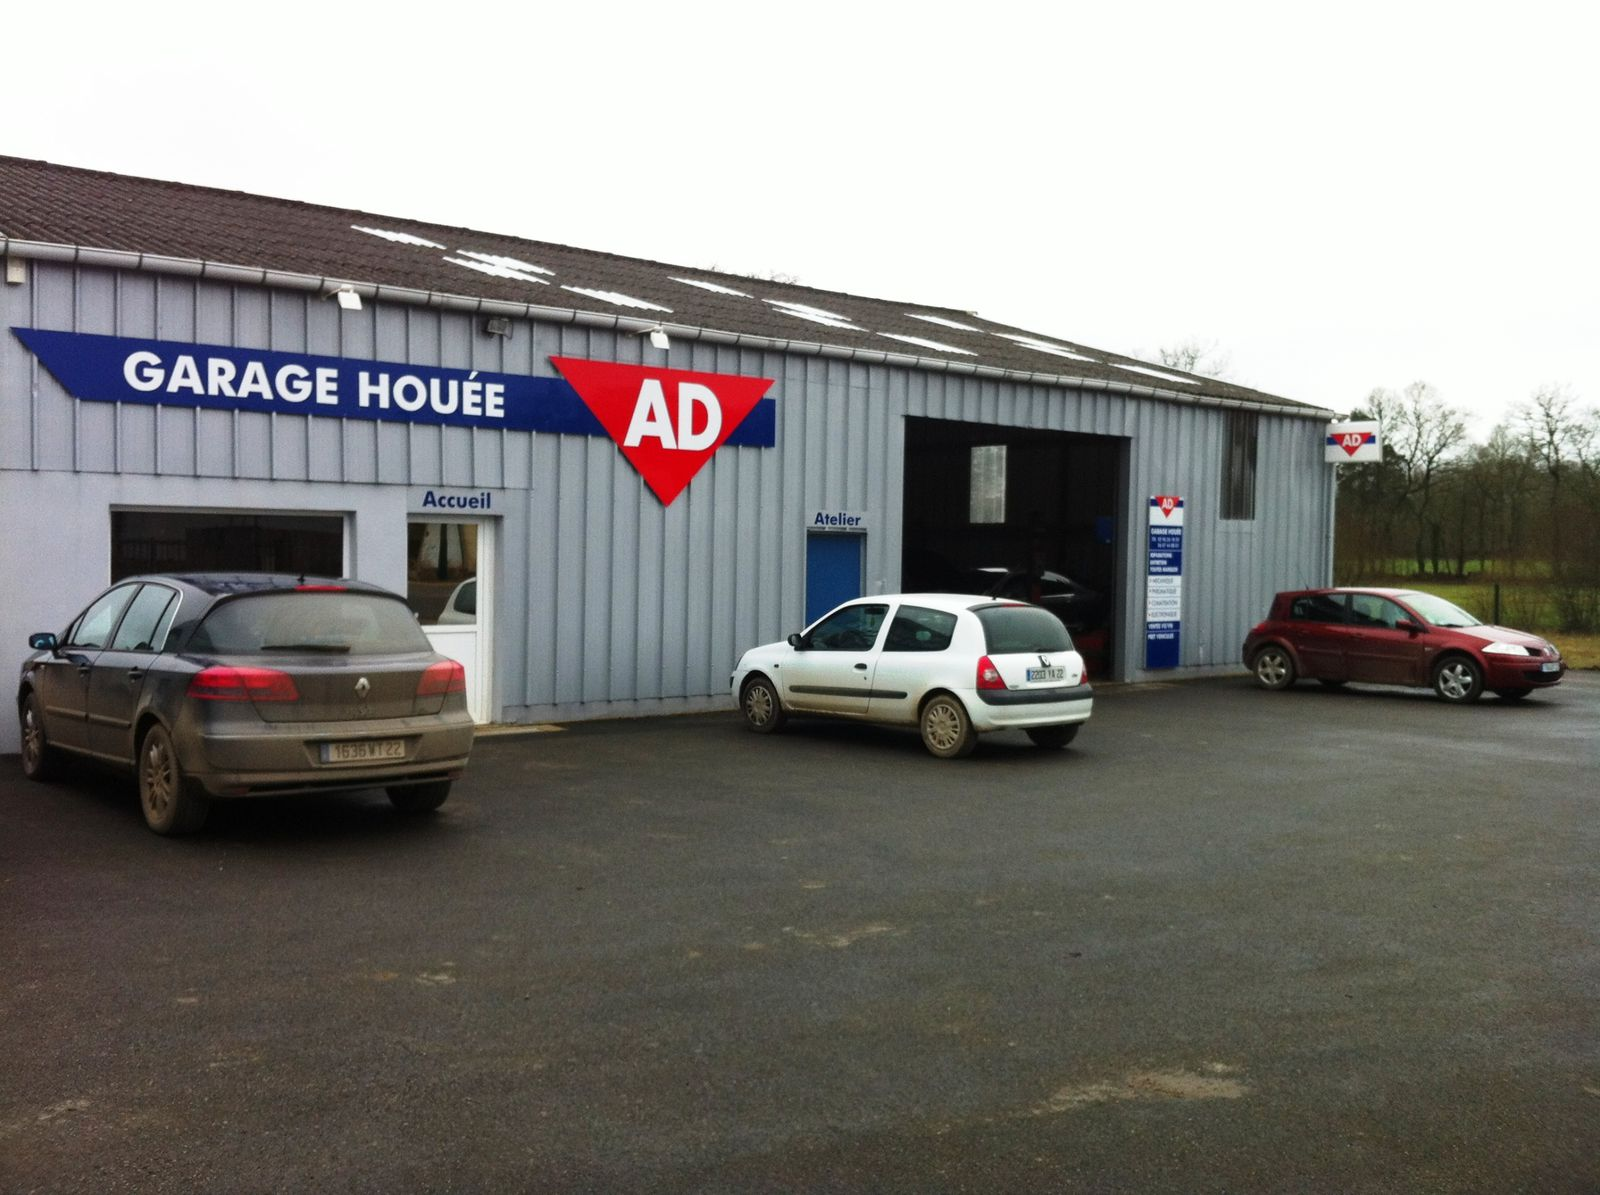 Album photos des garages ad et ad expert ad armorique for Garage ad expert montpellier